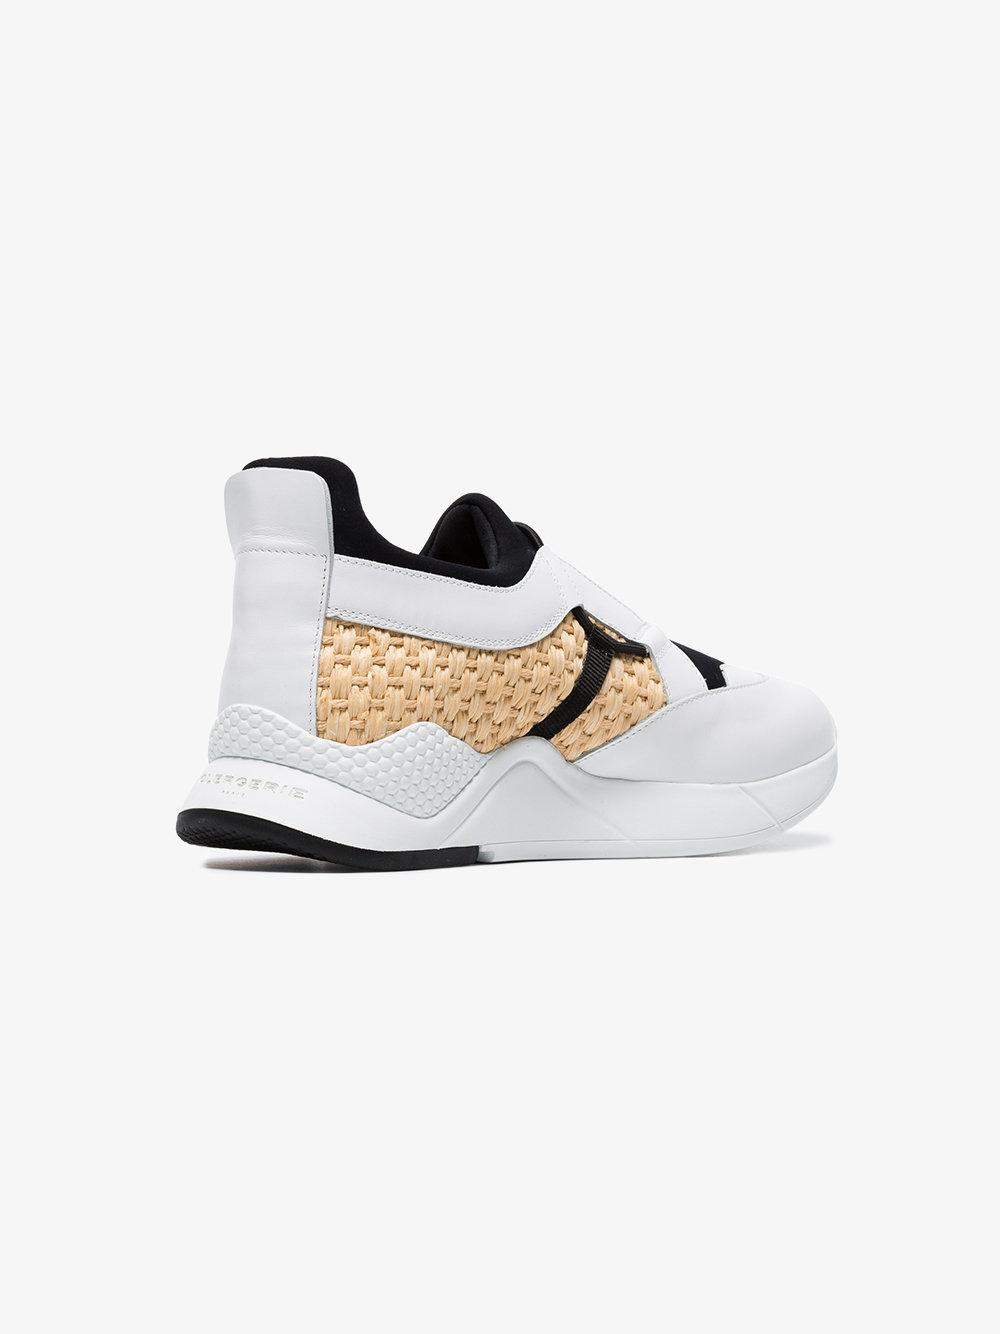 Clergerie White, Black And Yellow Salvy Leather Sneakers